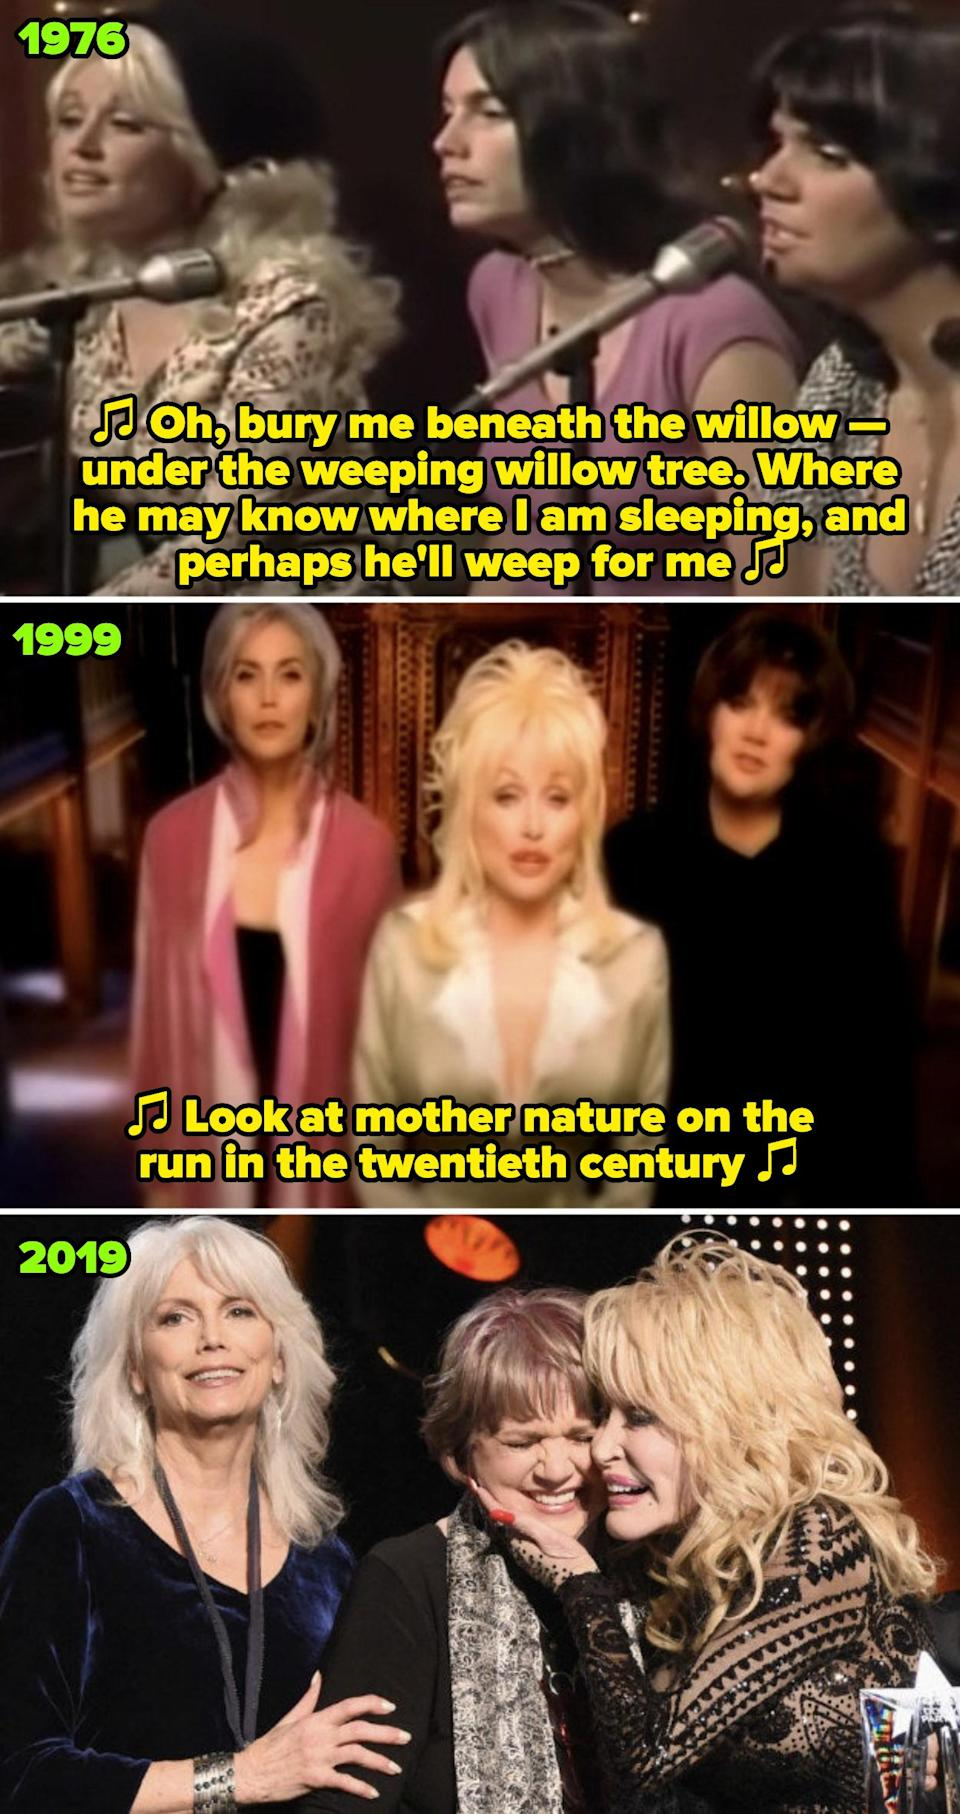 """Parton, Harris, and Ronstadt performing on """"Dolly,"""" singing: """"Bury me beneath the willow, beneath the weeping willow tree;"""" the trio in their """"After the Gold Rush"""" music video; the trio at Parton'sMusiCares Person Of The Year ceremony in 2019"""